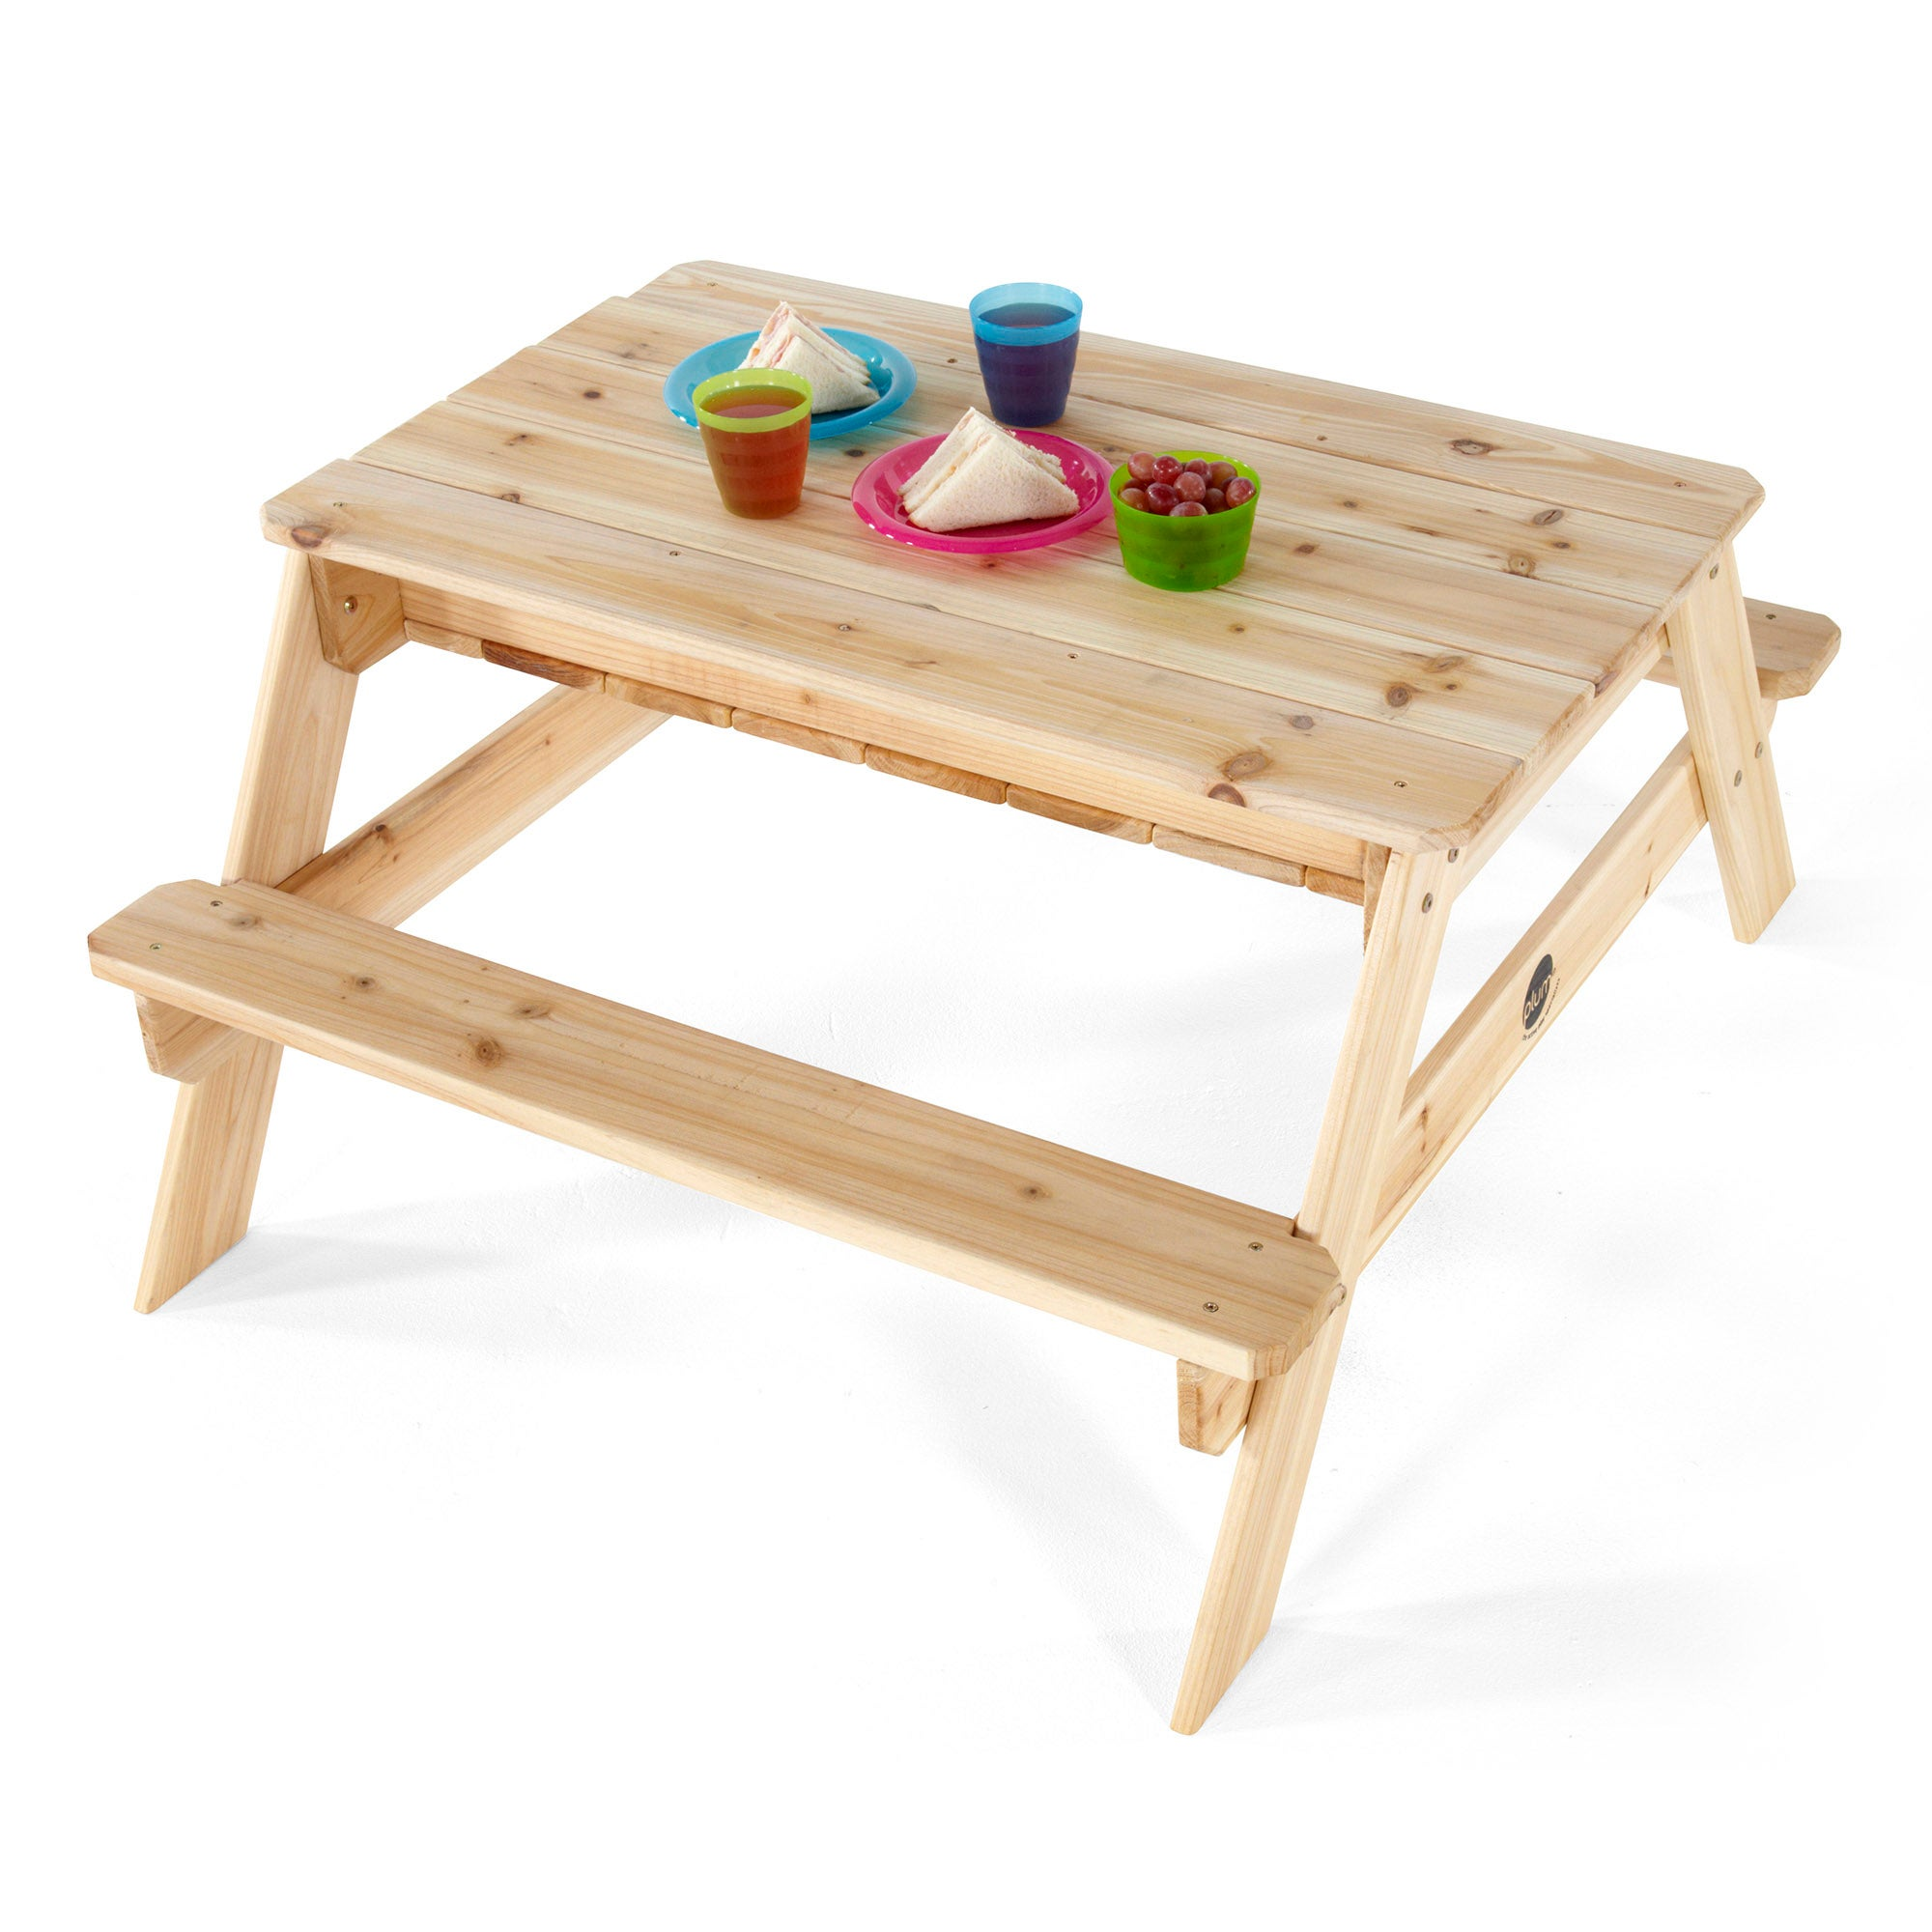 Wondrous Plum Kids Wooden Sandpit Picnic Table W 2 Benches Pabps2019 Chair Design Images Pabps2019Com